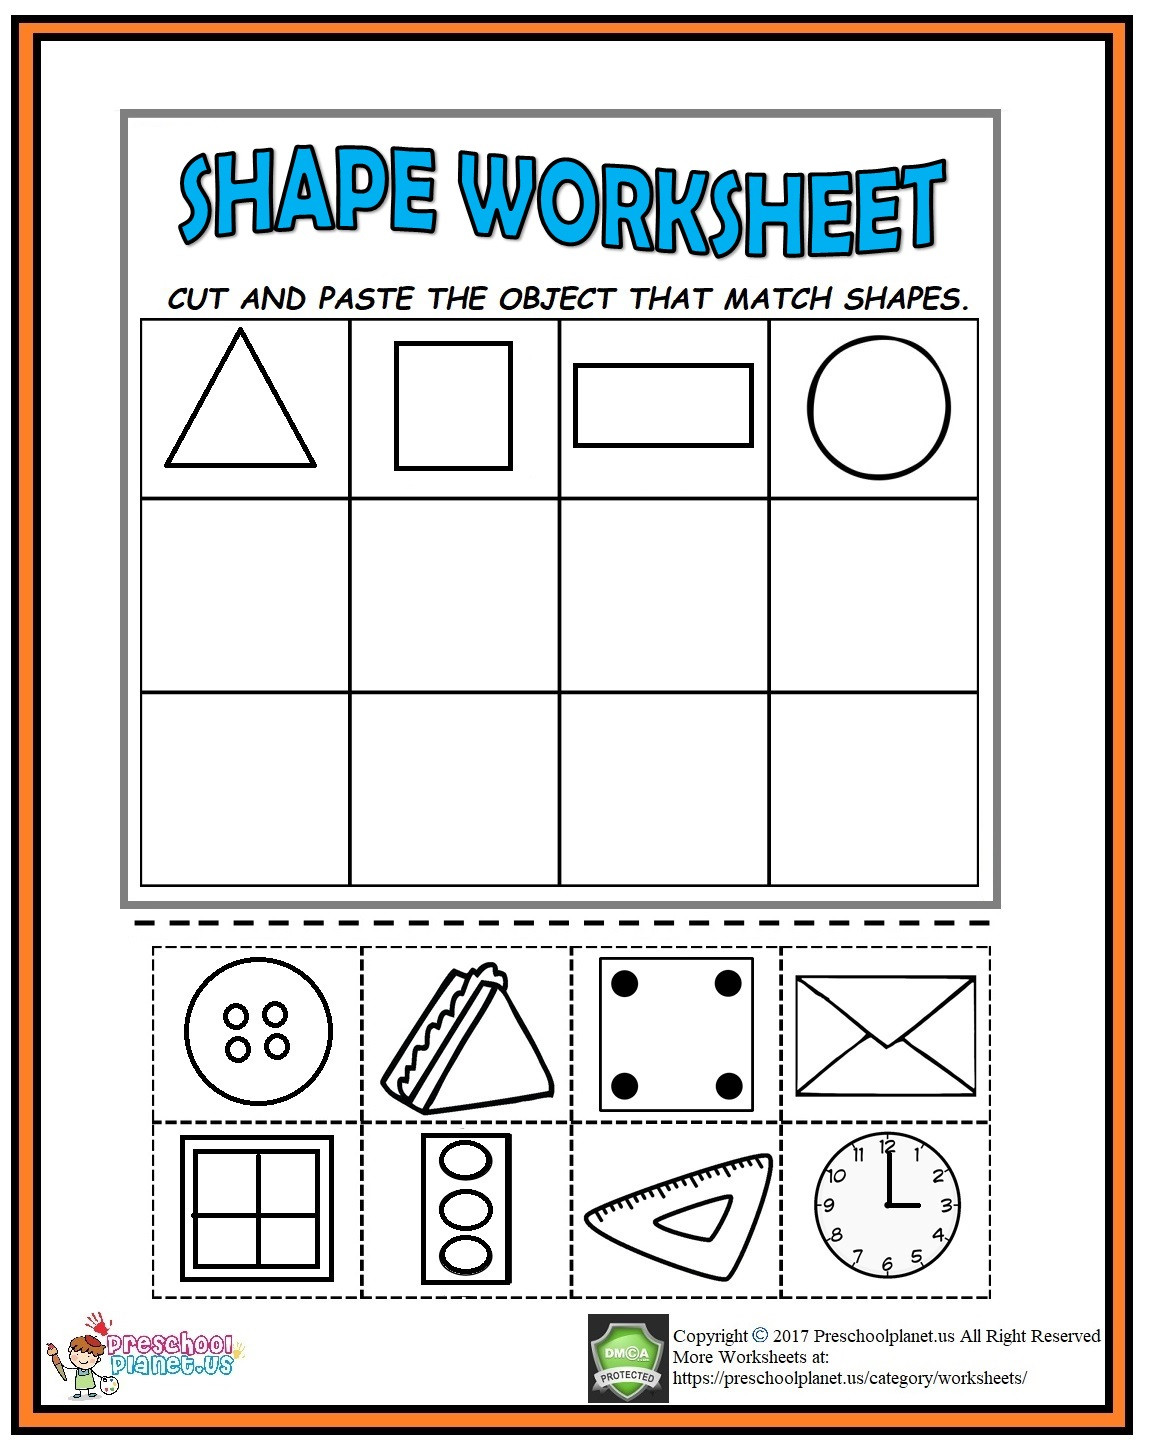 Printable Cutting Worksheets for Preschoolers Cut and Paste Shape Worksheet Preschoolplanet Cutting Shapes